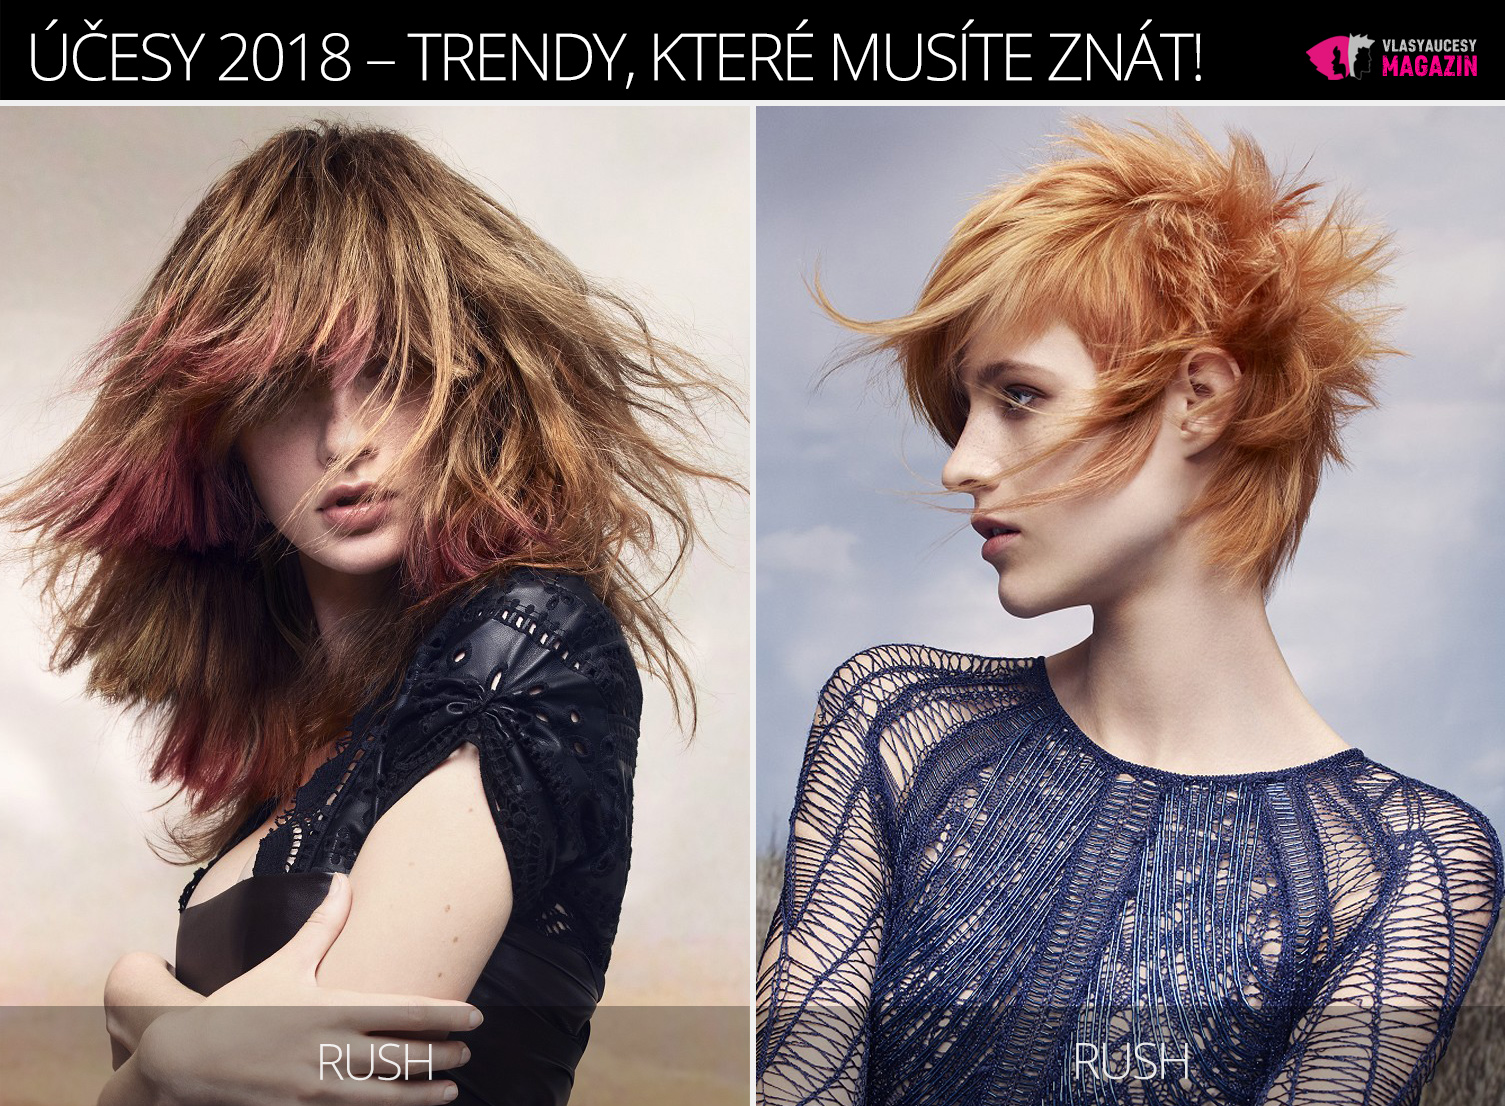 Účesy 2018 z kolekce Rush – Lost Rebels Collection (vlasy: Rush Artistic Team, foto: Jack Eames, make-up: Kristina Vide, styling: Robert Morrison.)